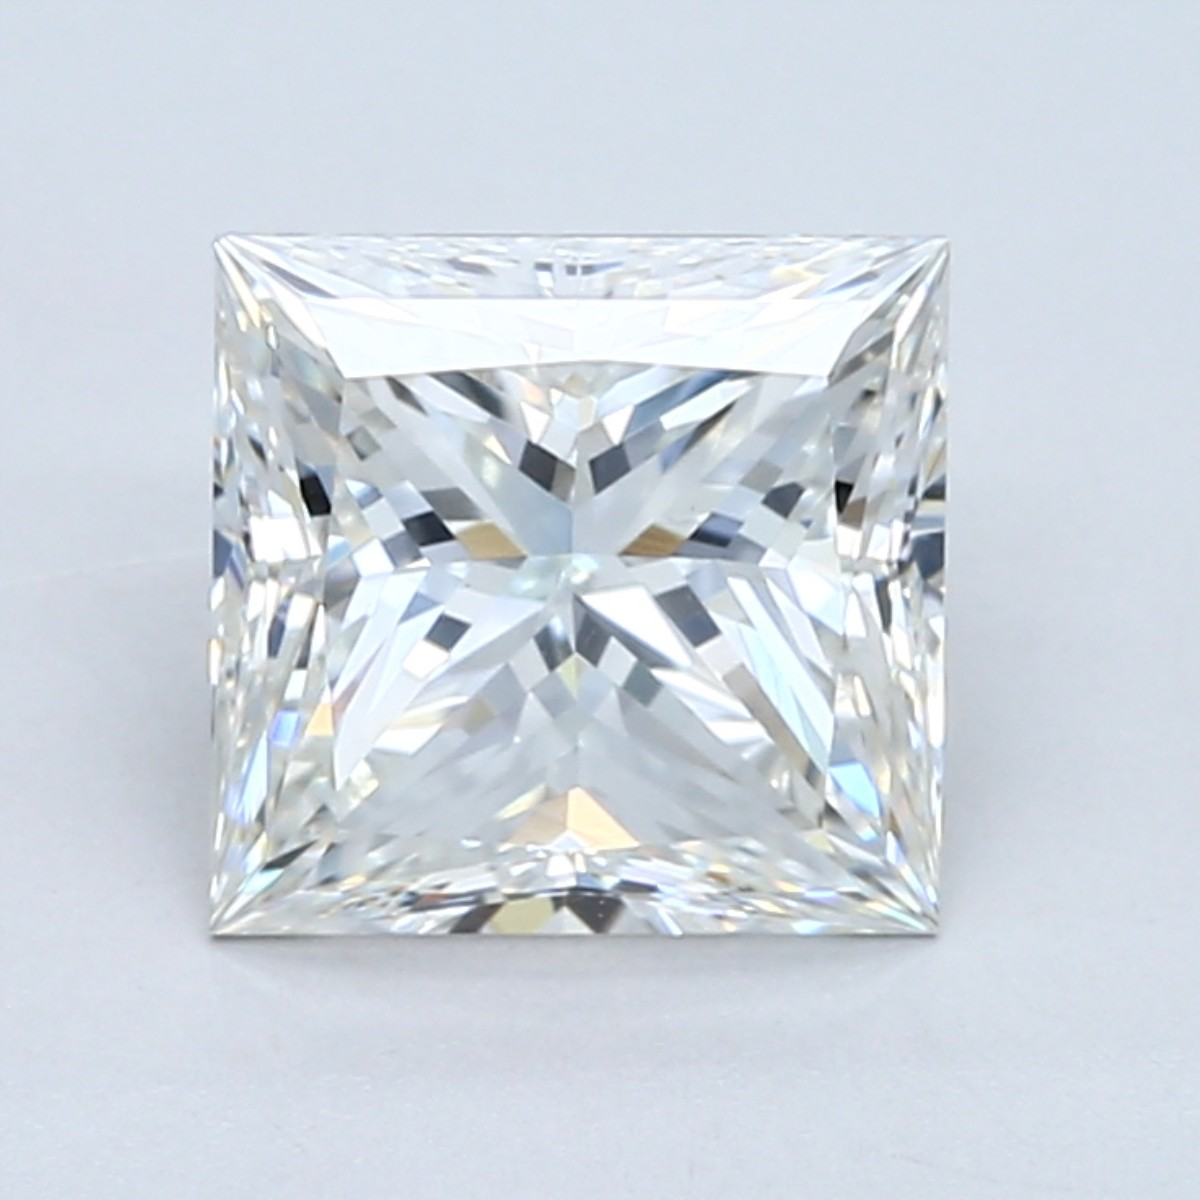 2.5 carat H color princess cut diamond